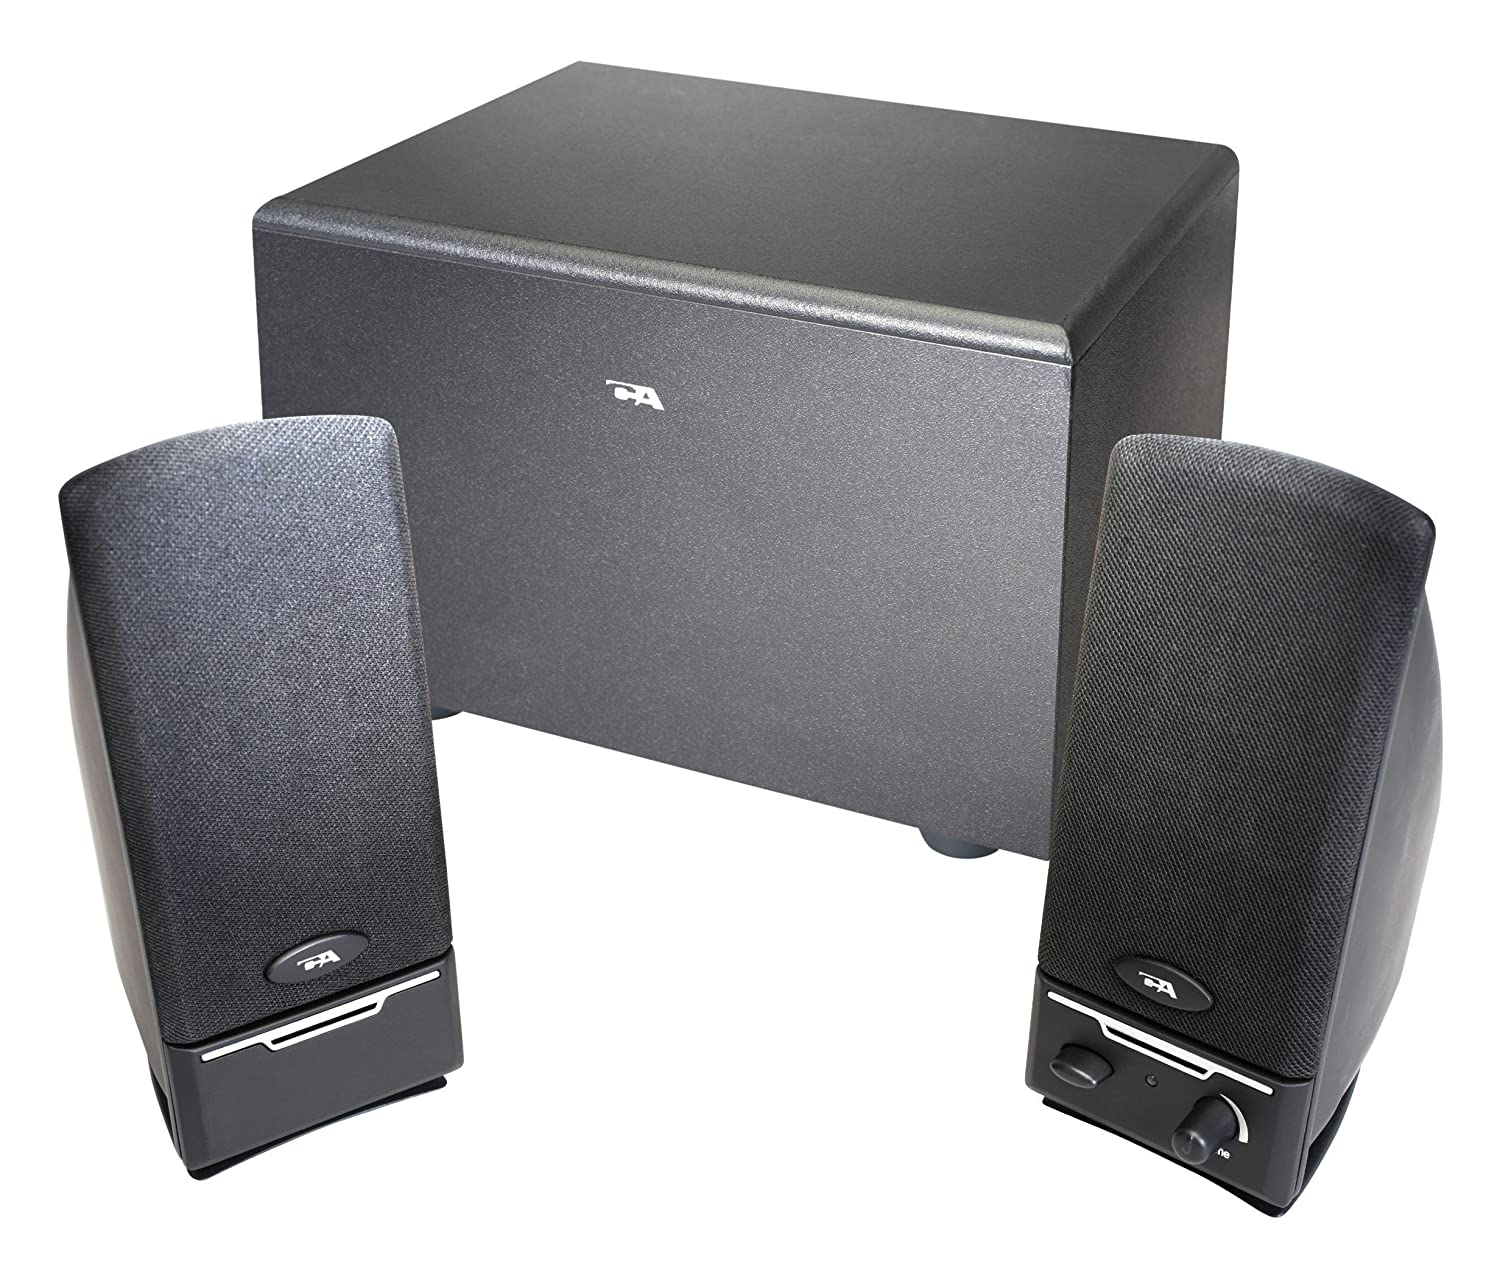 Amazon.com: Cyber Acoustics 2.1 PC computer speakers with subwoofer  (CA-3000): Electronics